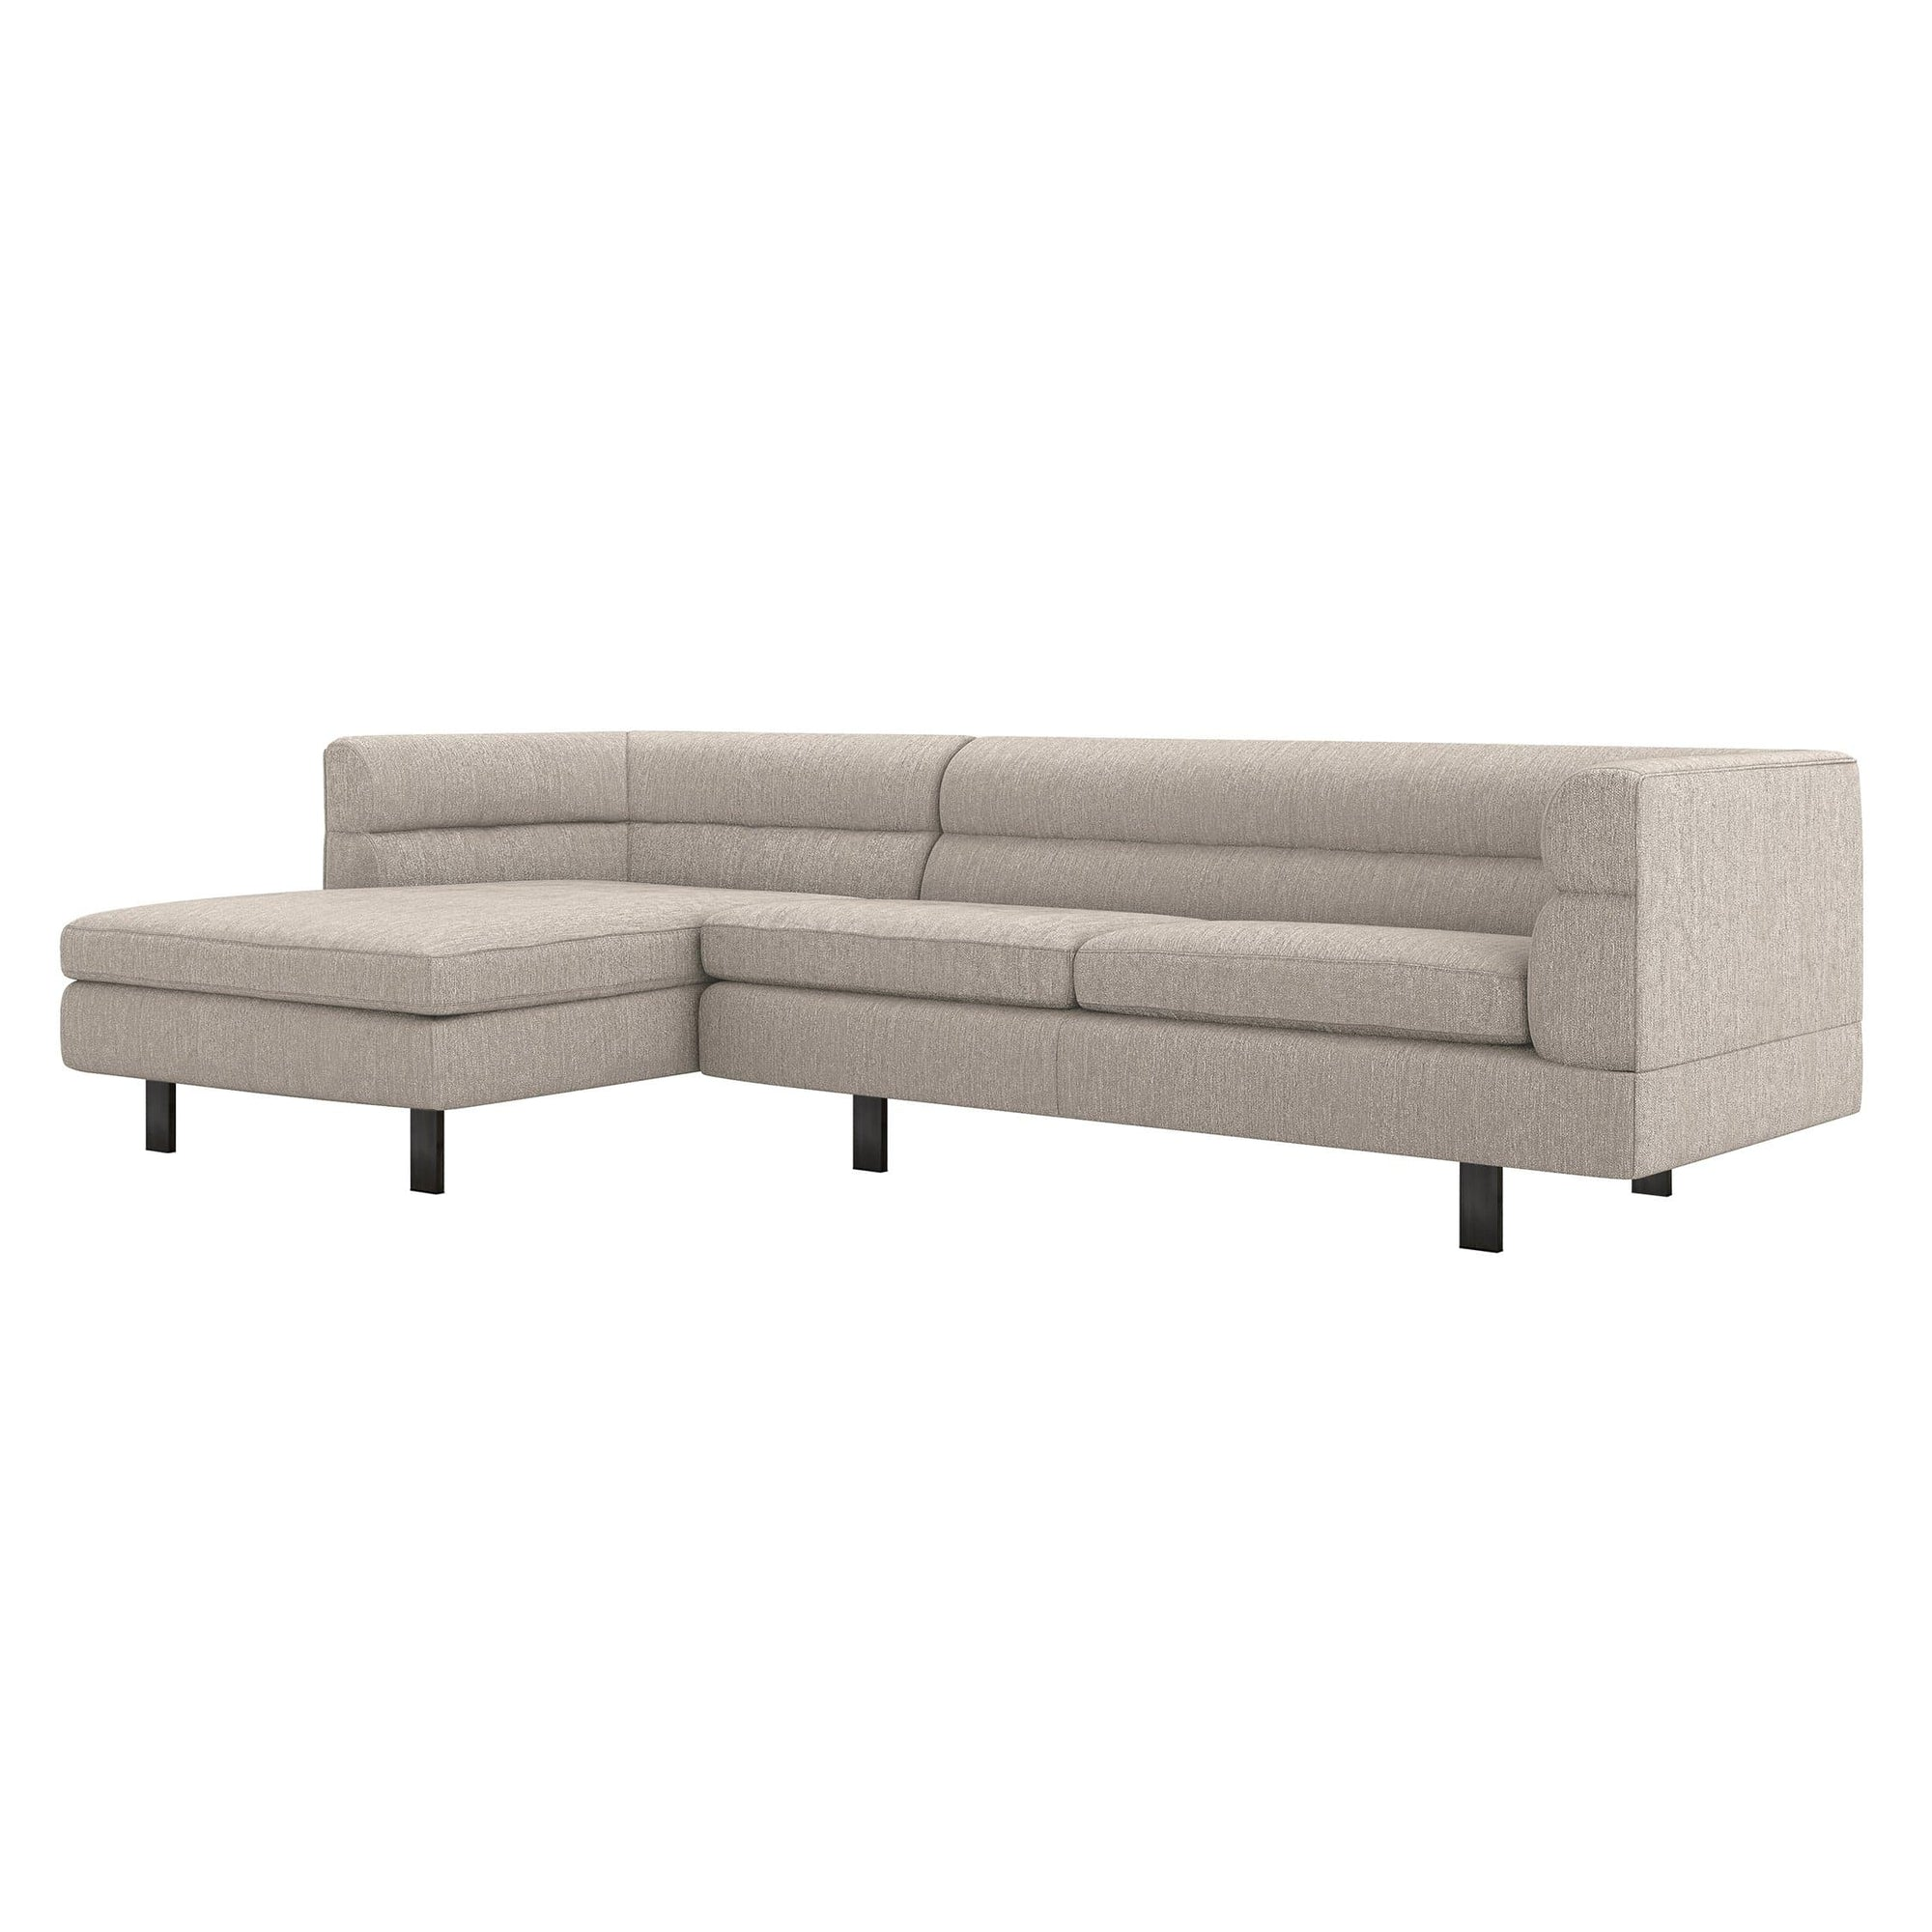 Interlude Home Interlude Home Ornette Left Chaise 2 Piece Sectional - Light Brown 199022-2